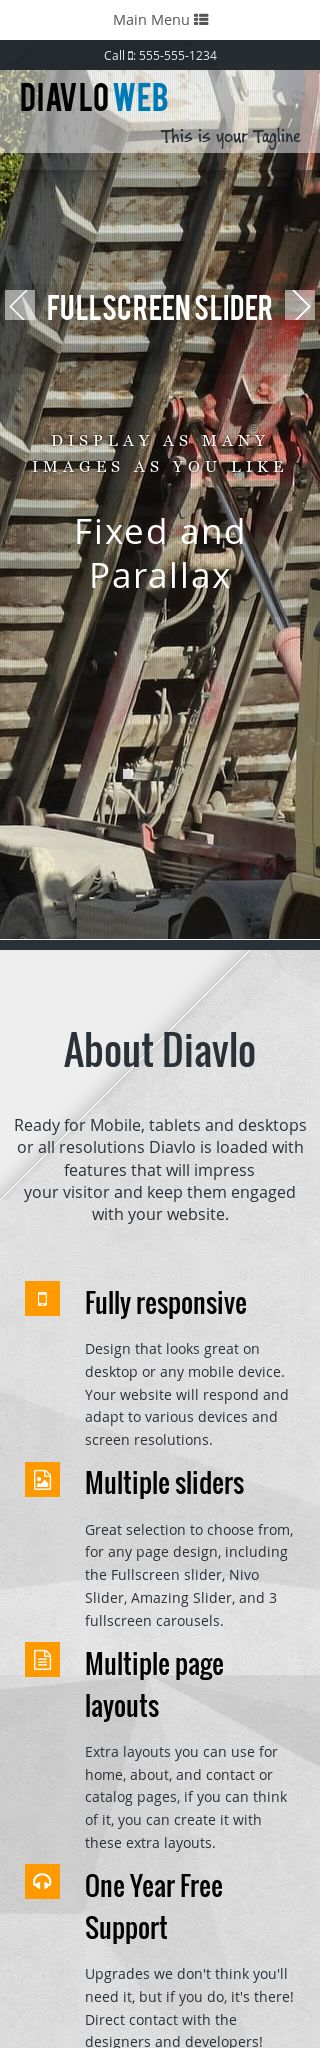 Mobile: Trucking Web Template